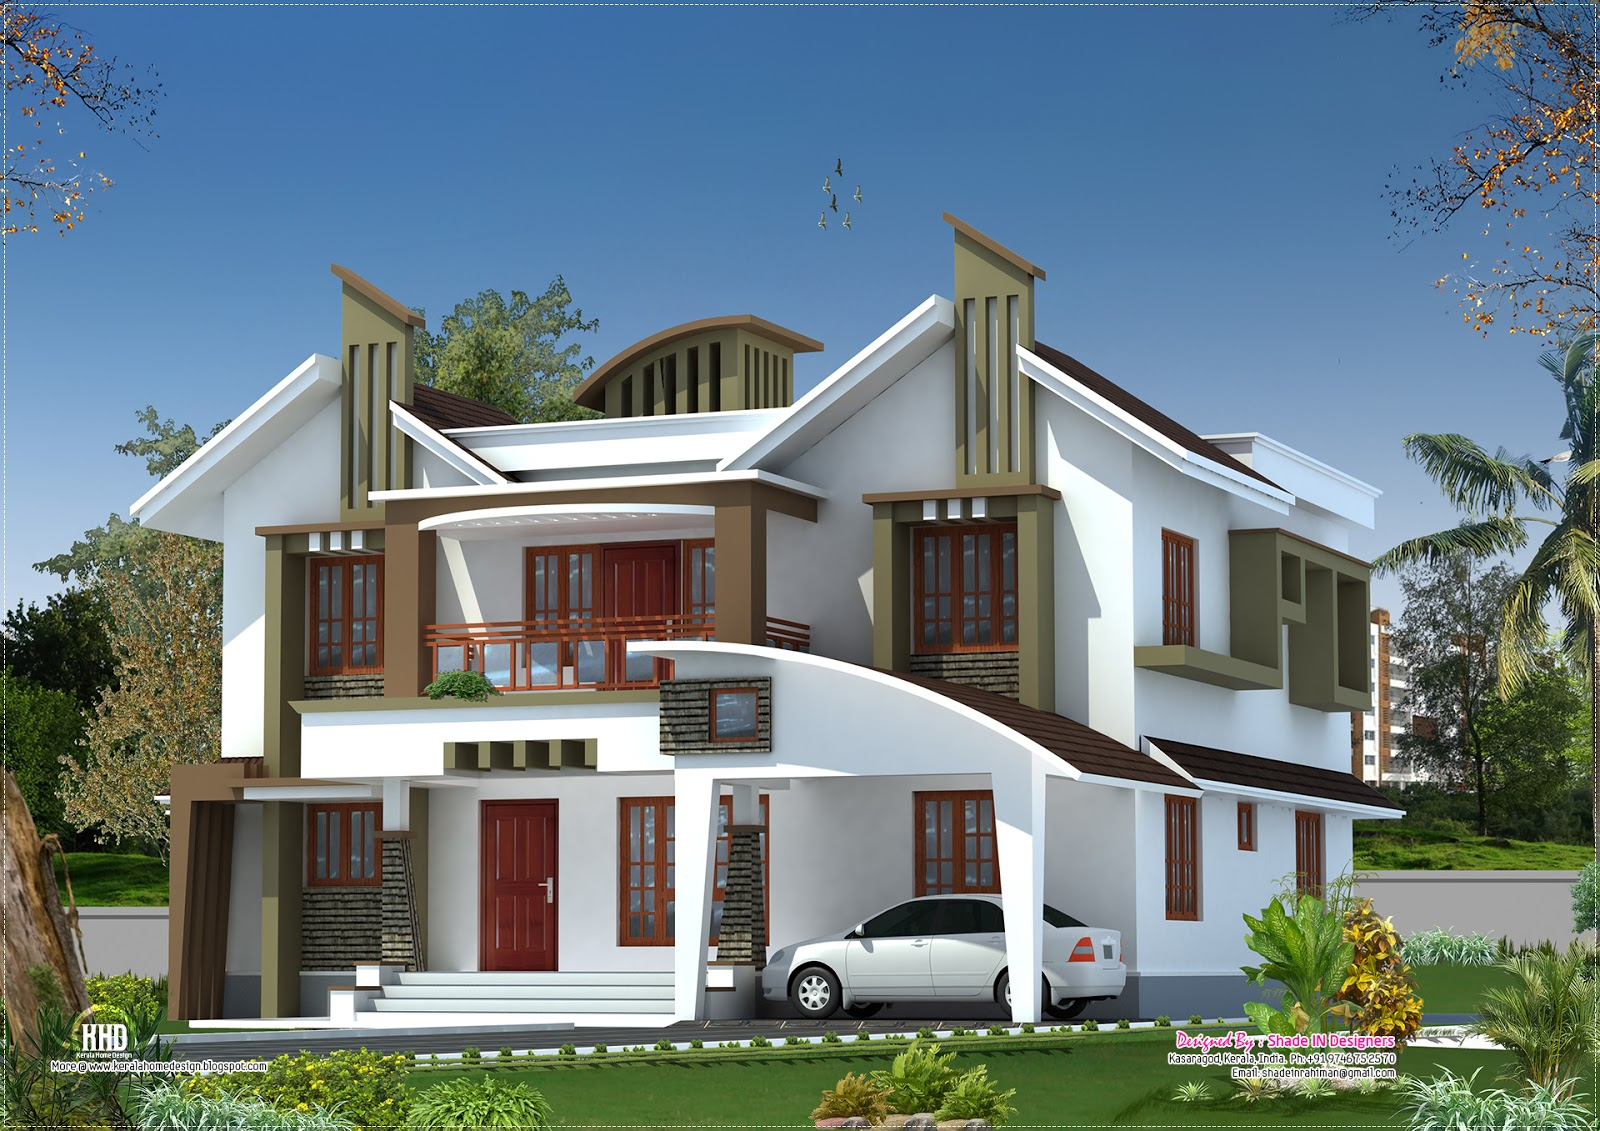 Modern house elevation from Kasaragod, Kerala | House ...